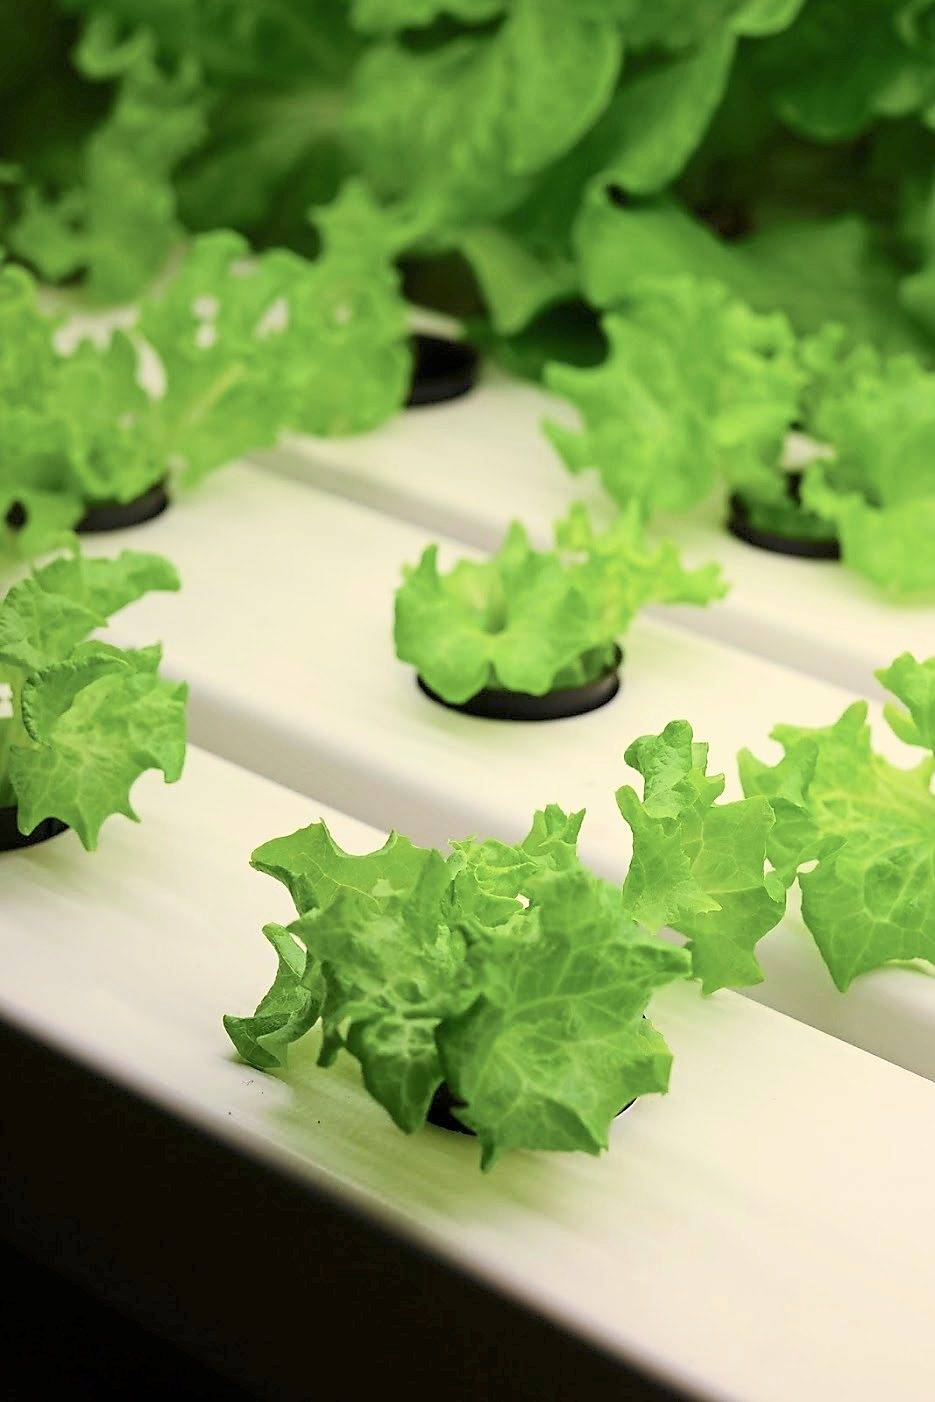 In vertical farming, plants like vegetables, herbs and fruits are grown in a highly-controlled environment.